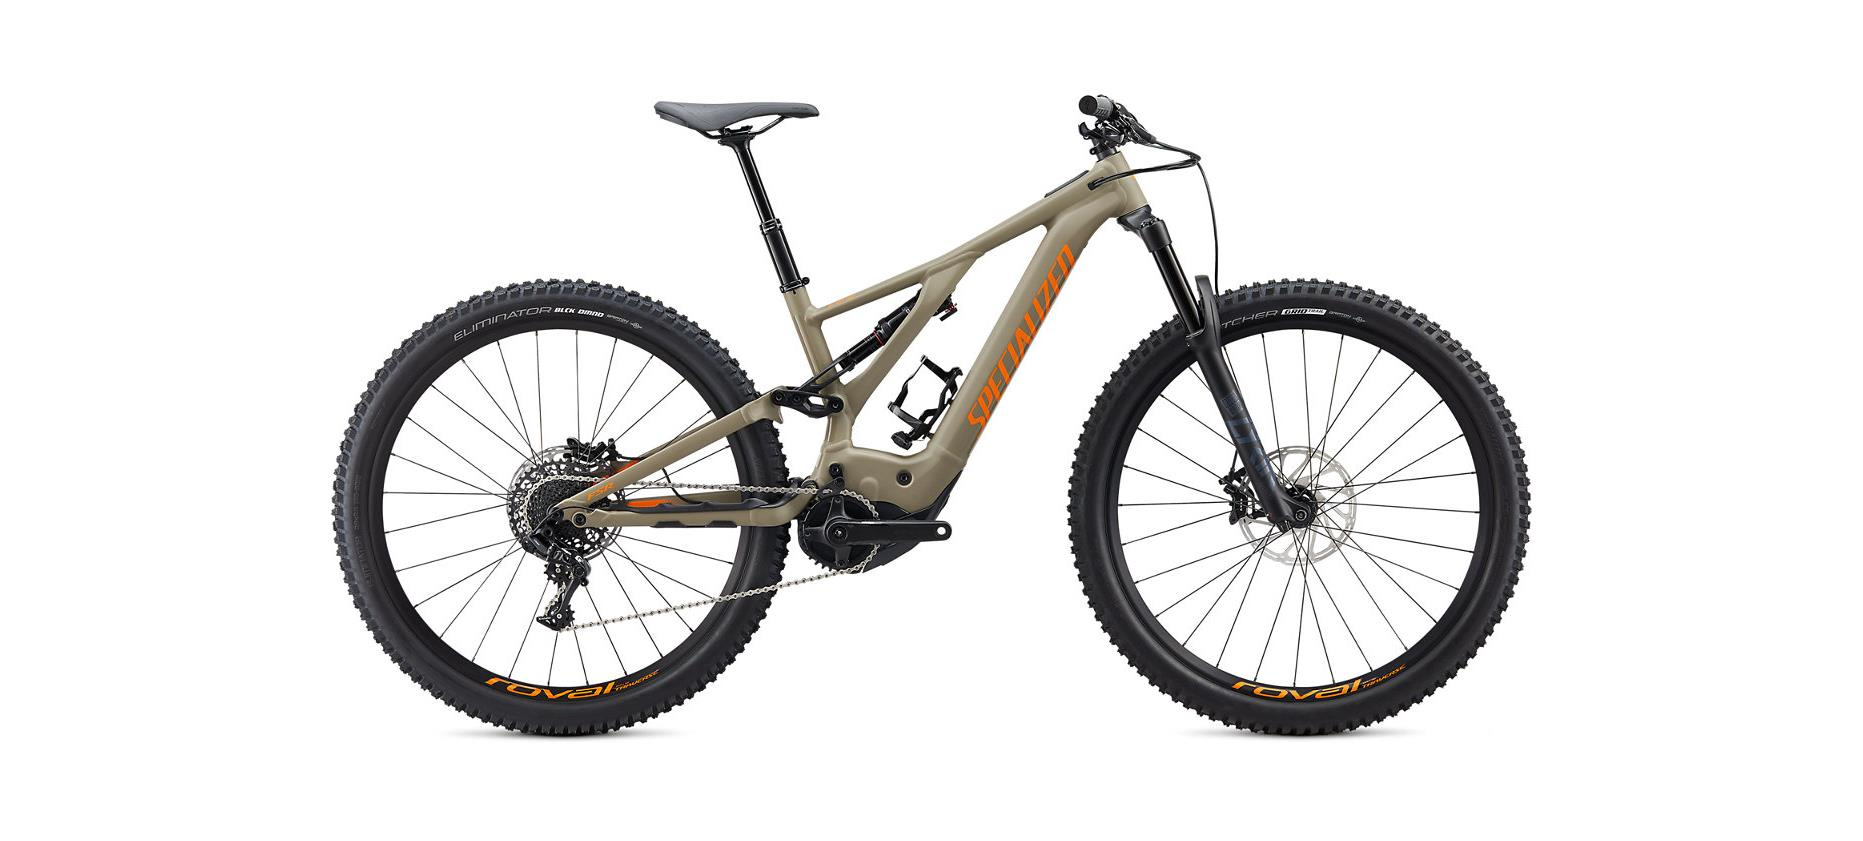 Specialized Turbo Levo Comp Taupe/Voodoo Orange 2020 - 29 700 Wh -  M